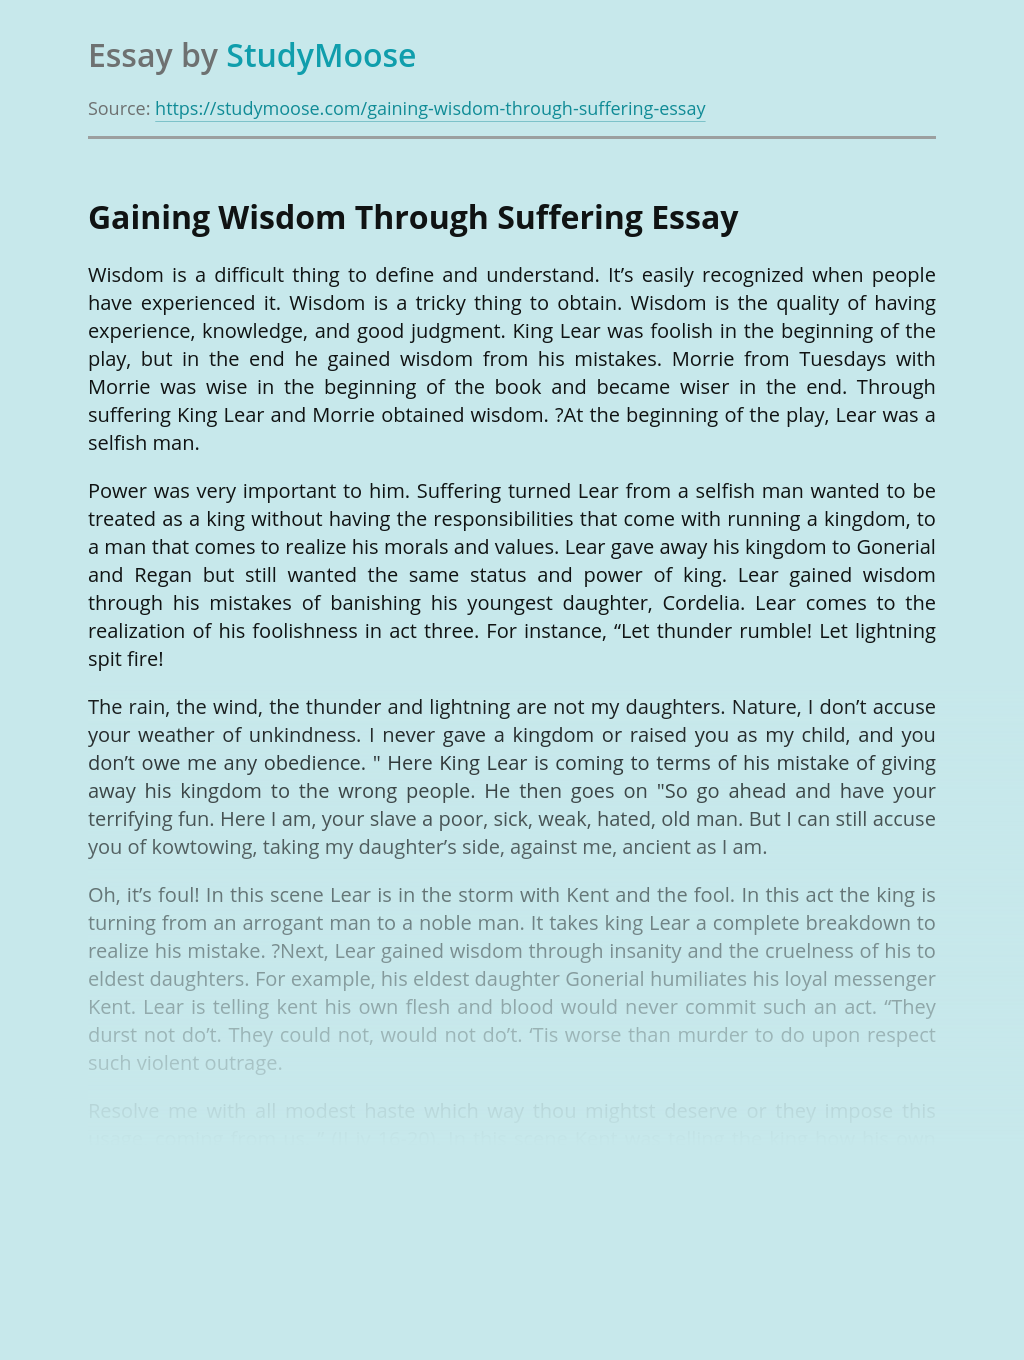 Gaining Wisdom Through Suffering